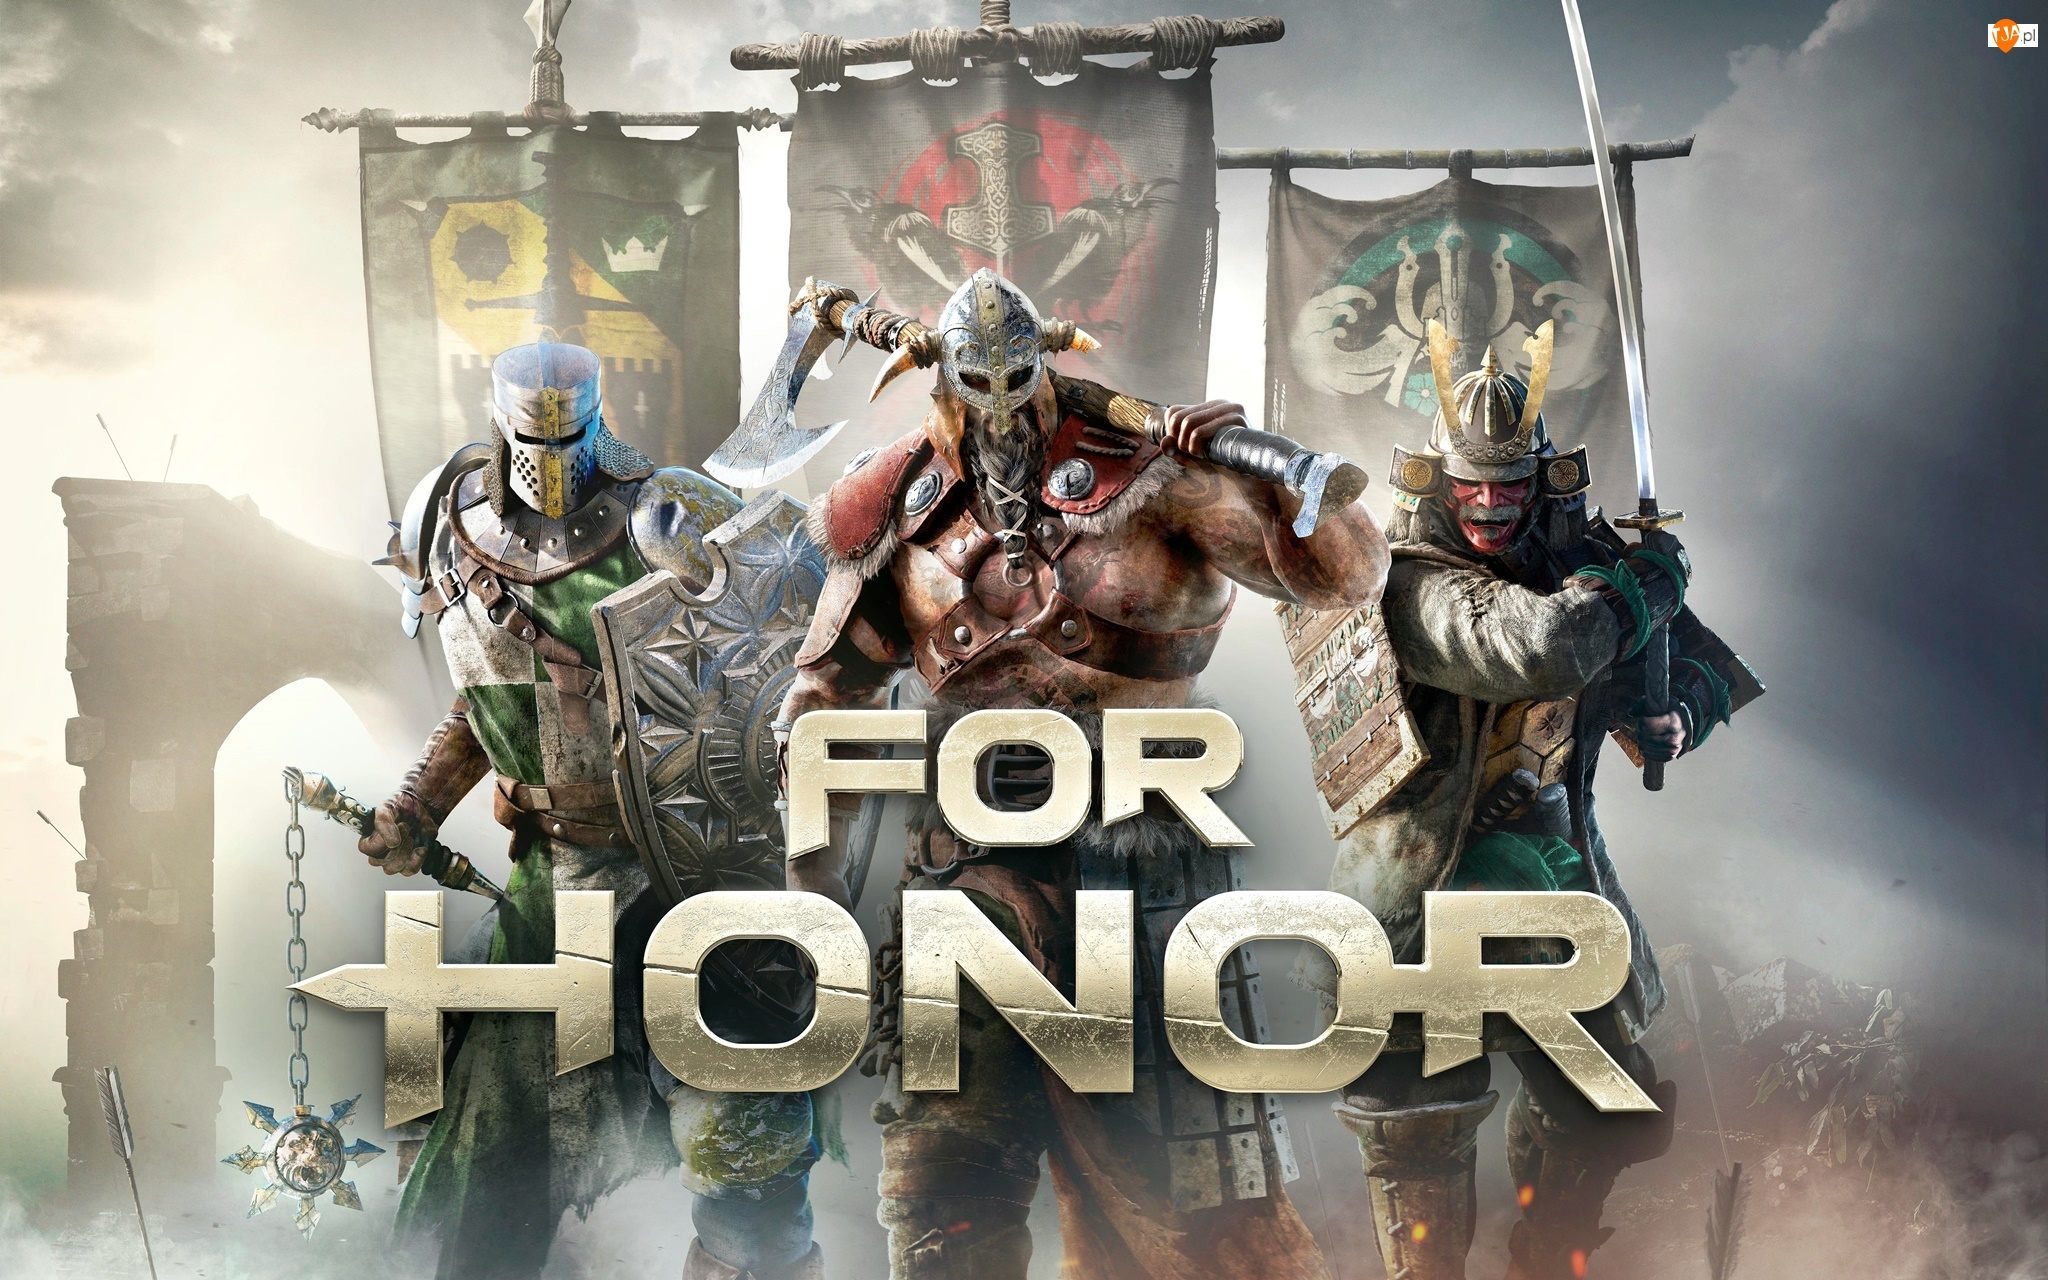 Rycerz, Samuraj, For Honor, Proporce, Gra, Wiking